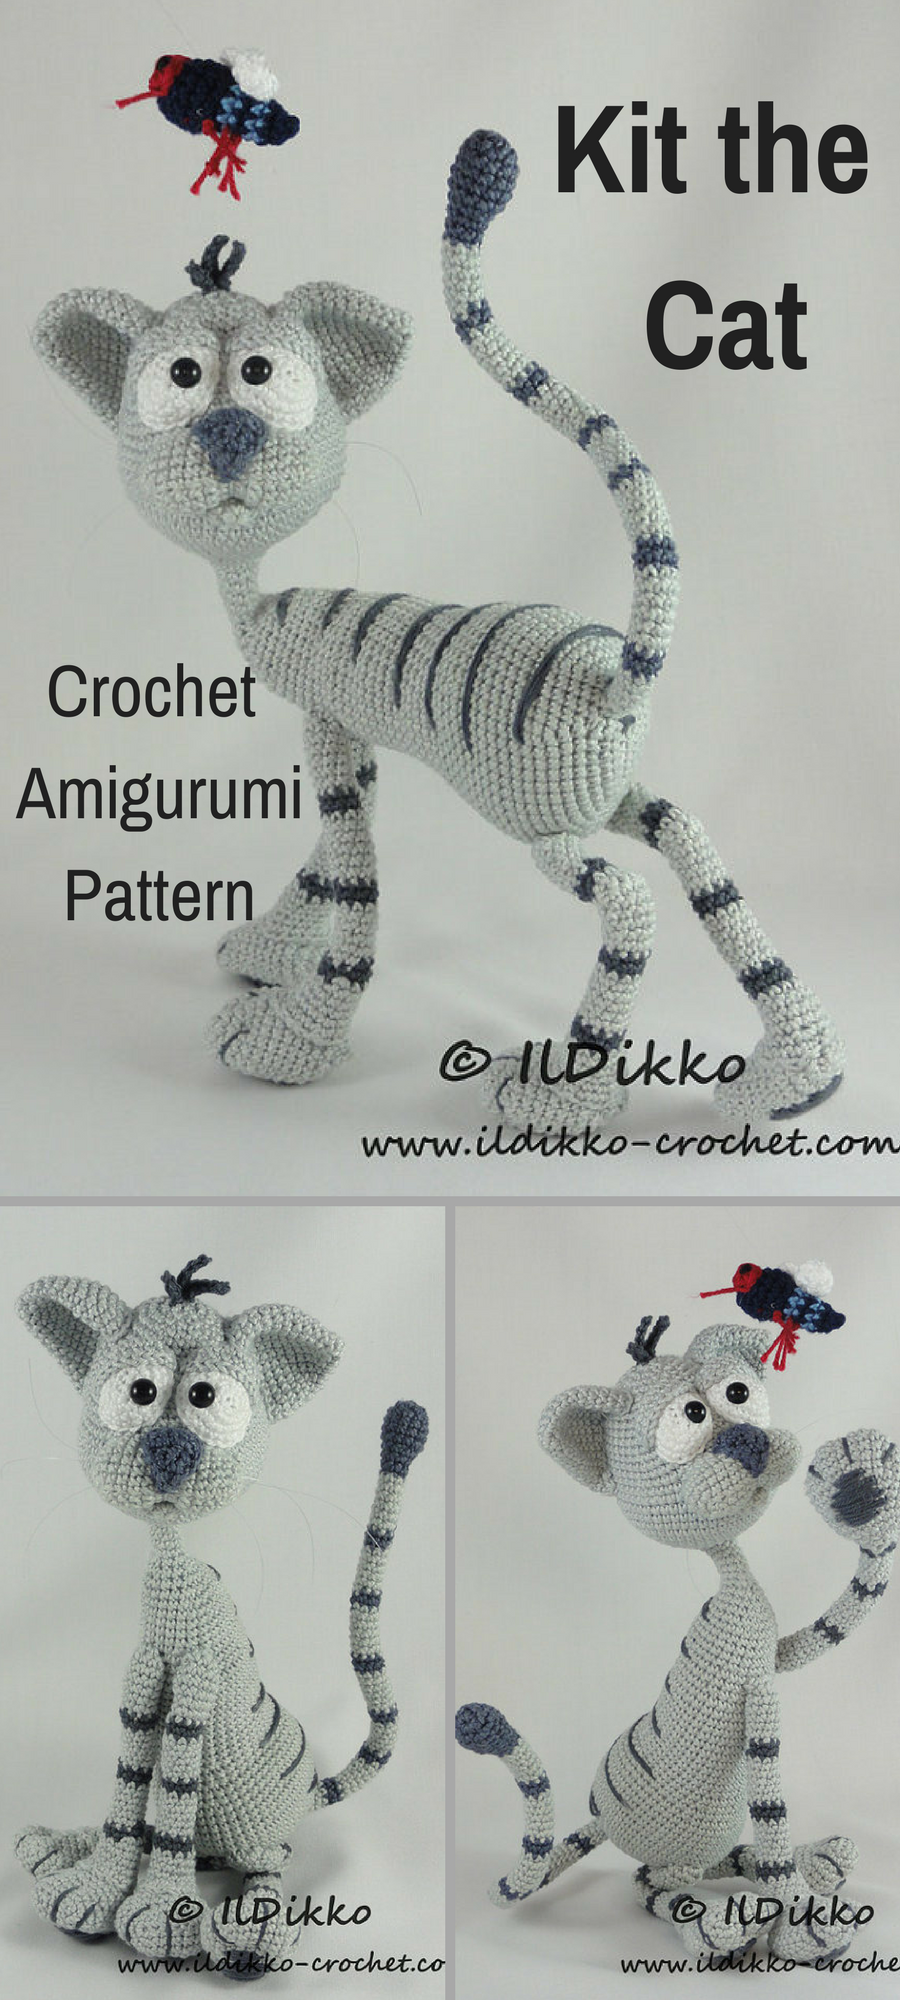 Kit the Cat is a sweet crocheted amigurumi doll that would love to ...